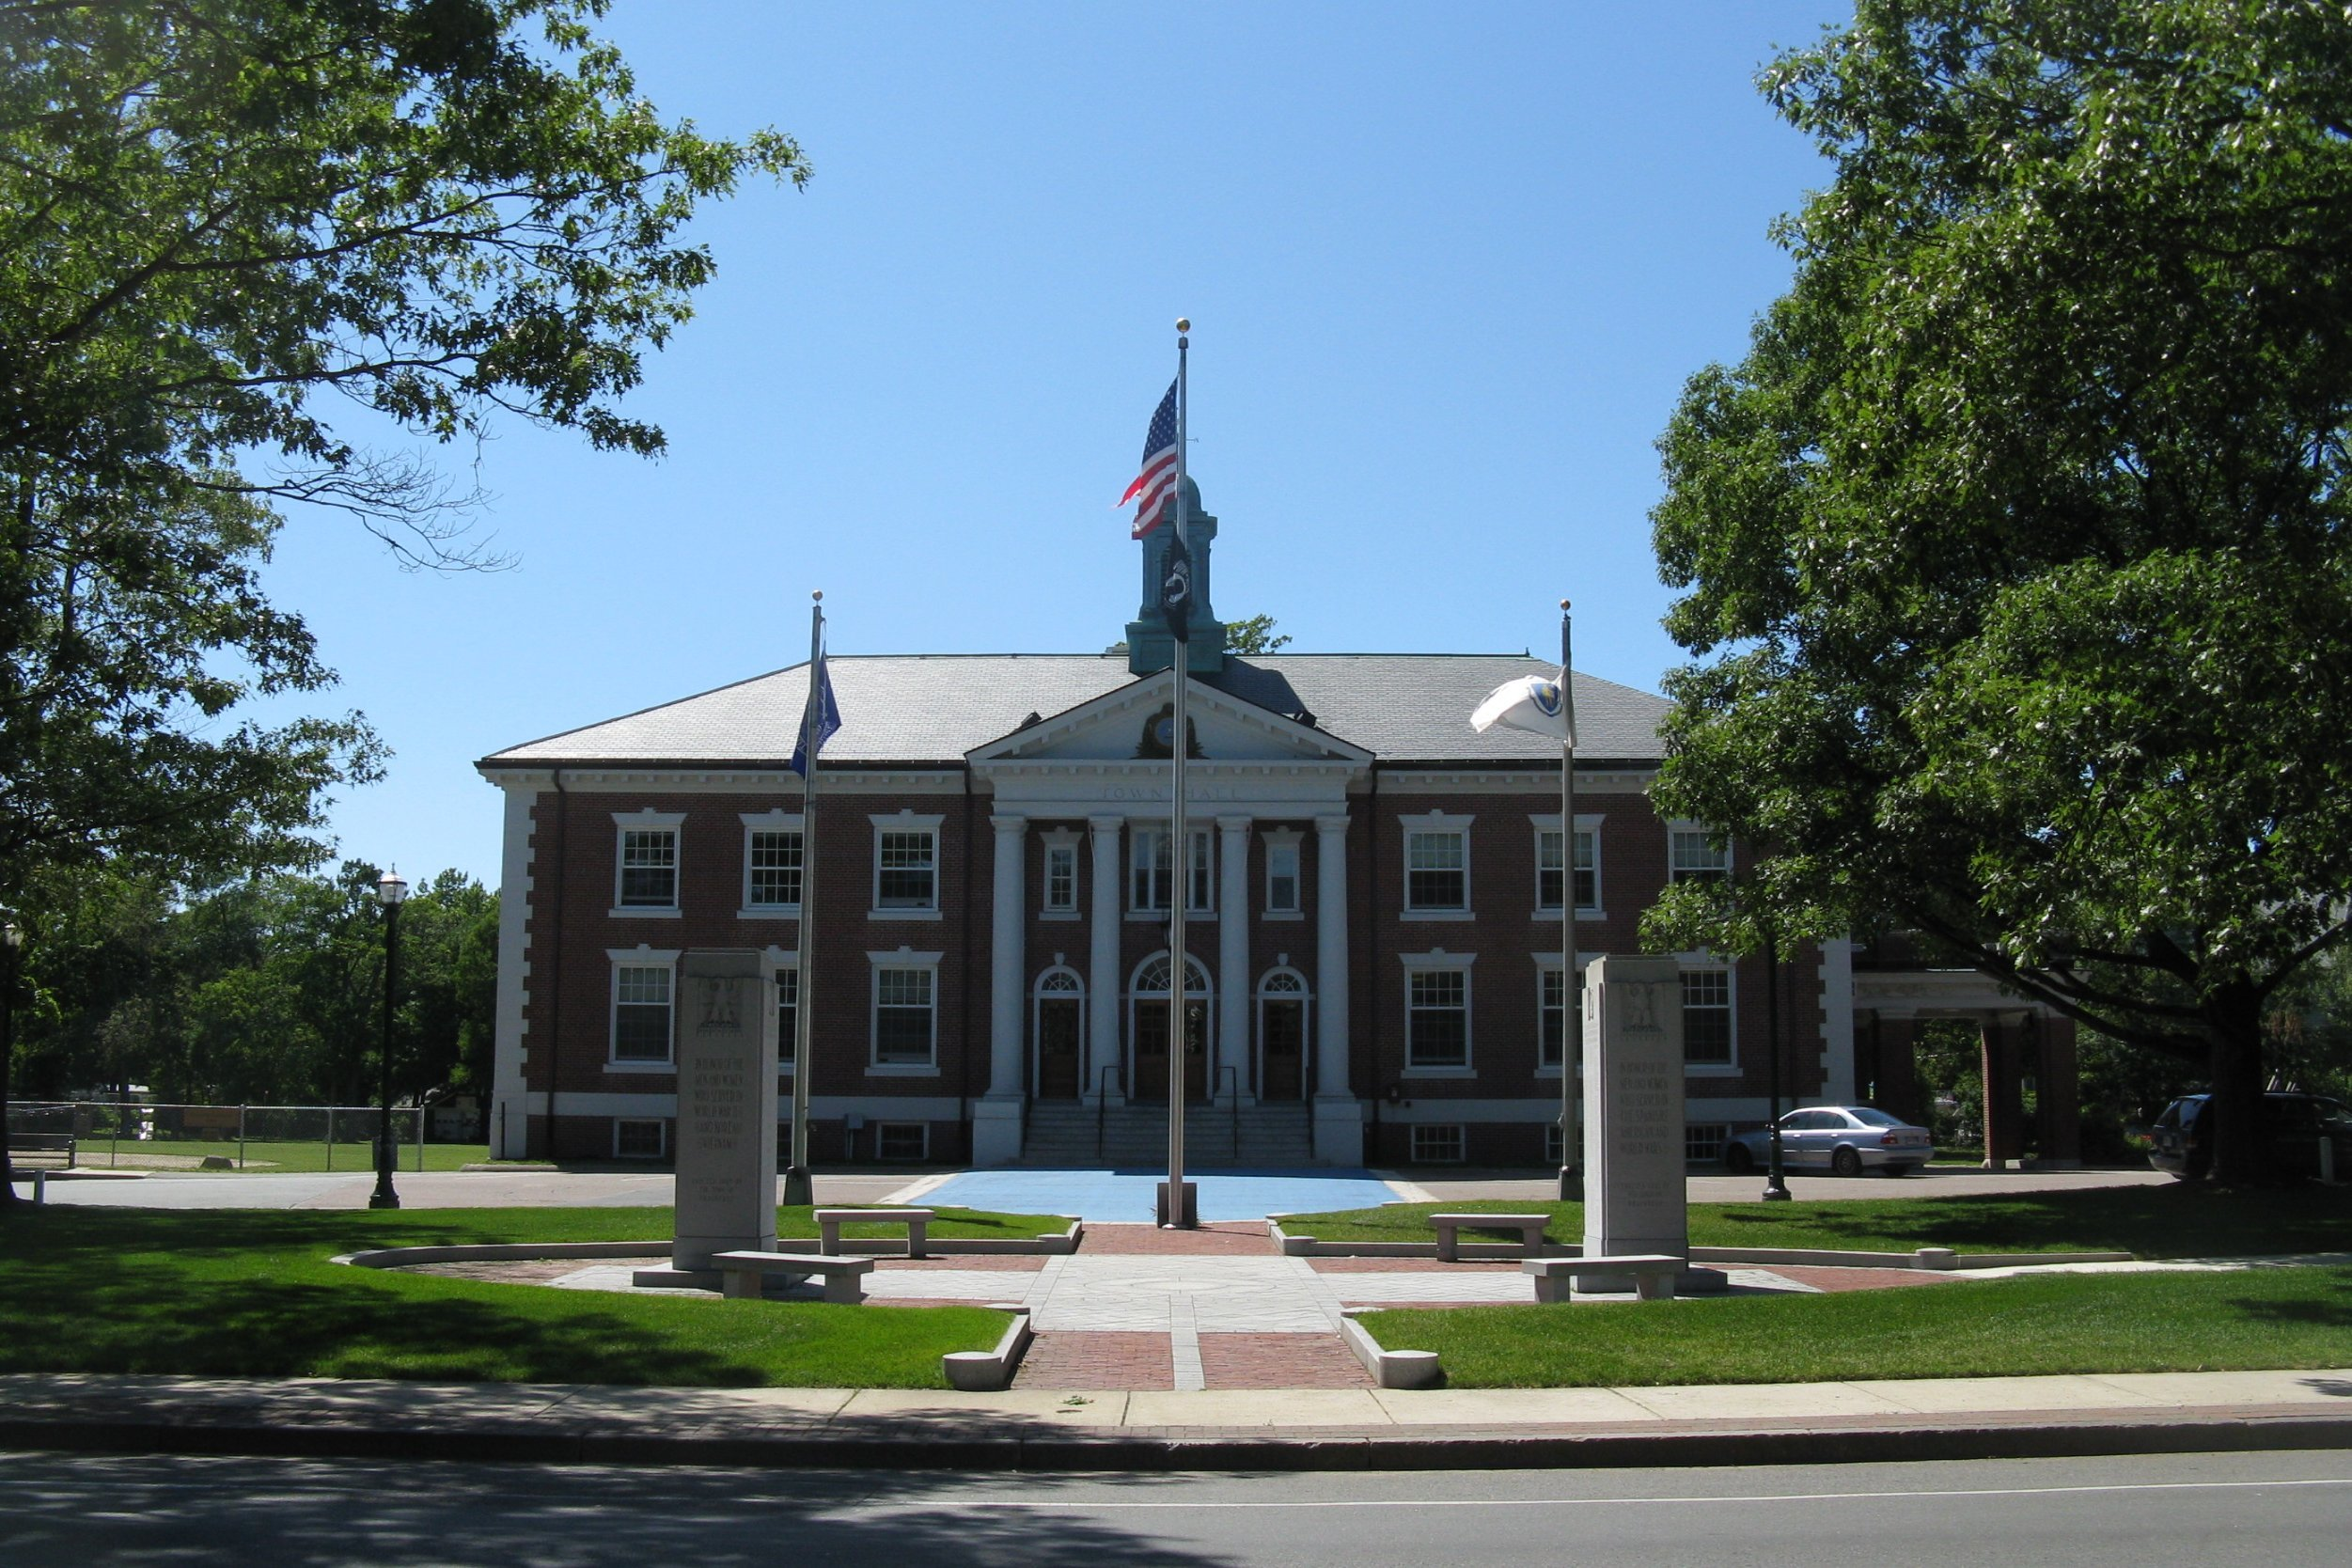 Town Hall Building in Braintree MA